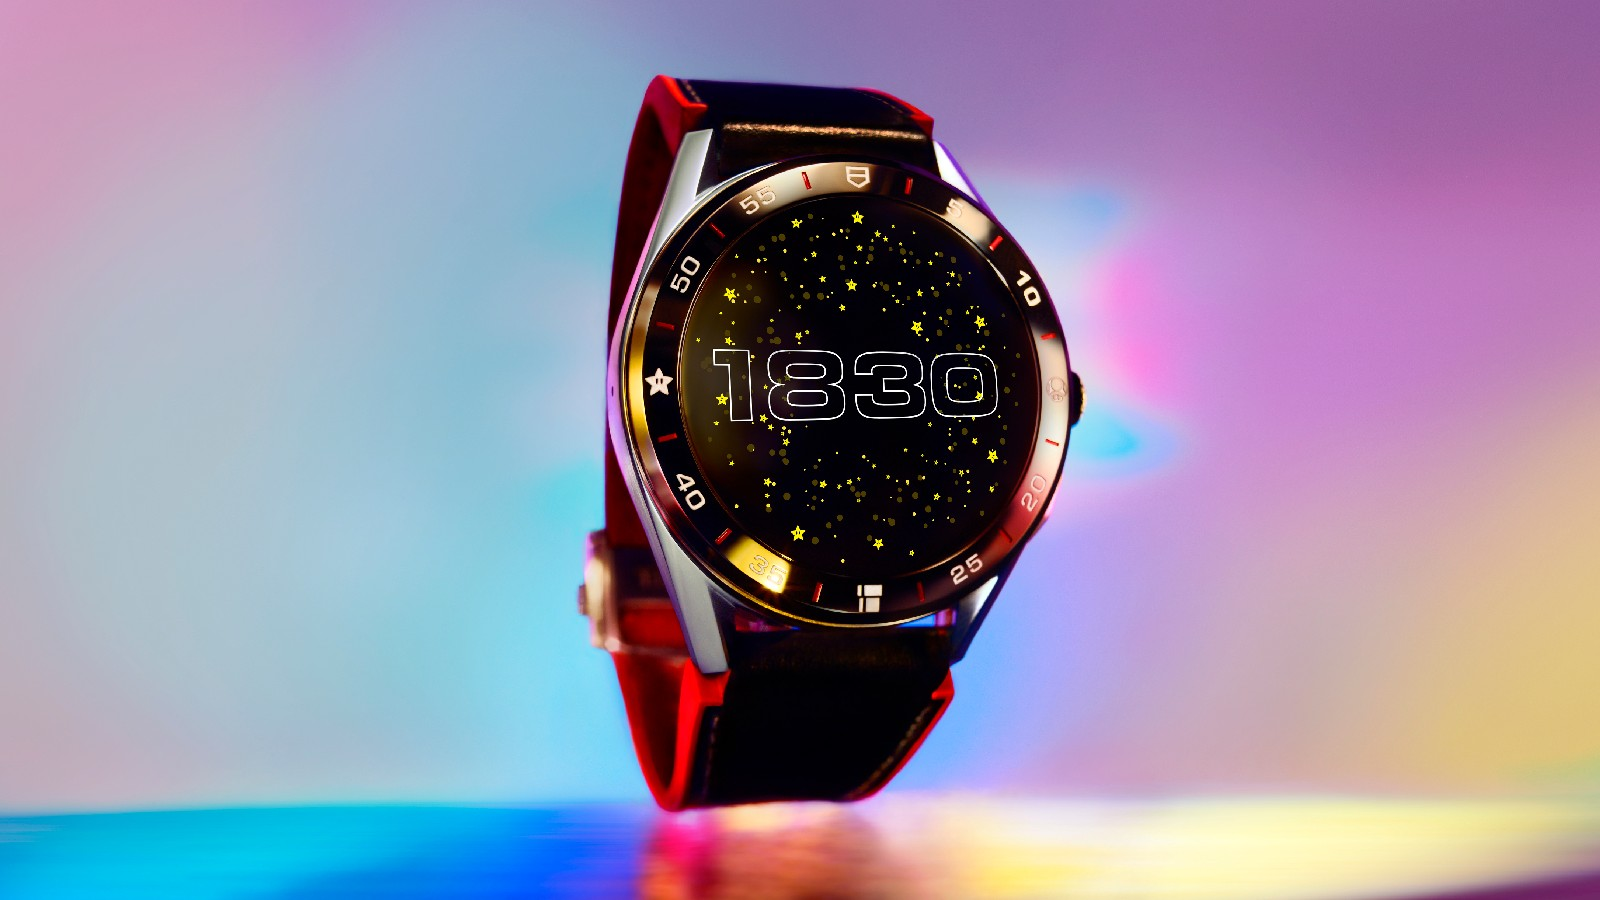 <p>Tag Heuer Connected Limited Edition Super Mario with a red-and-black strap. The watch face features the numbers 1830 in retro font, against a background of stars.</p>